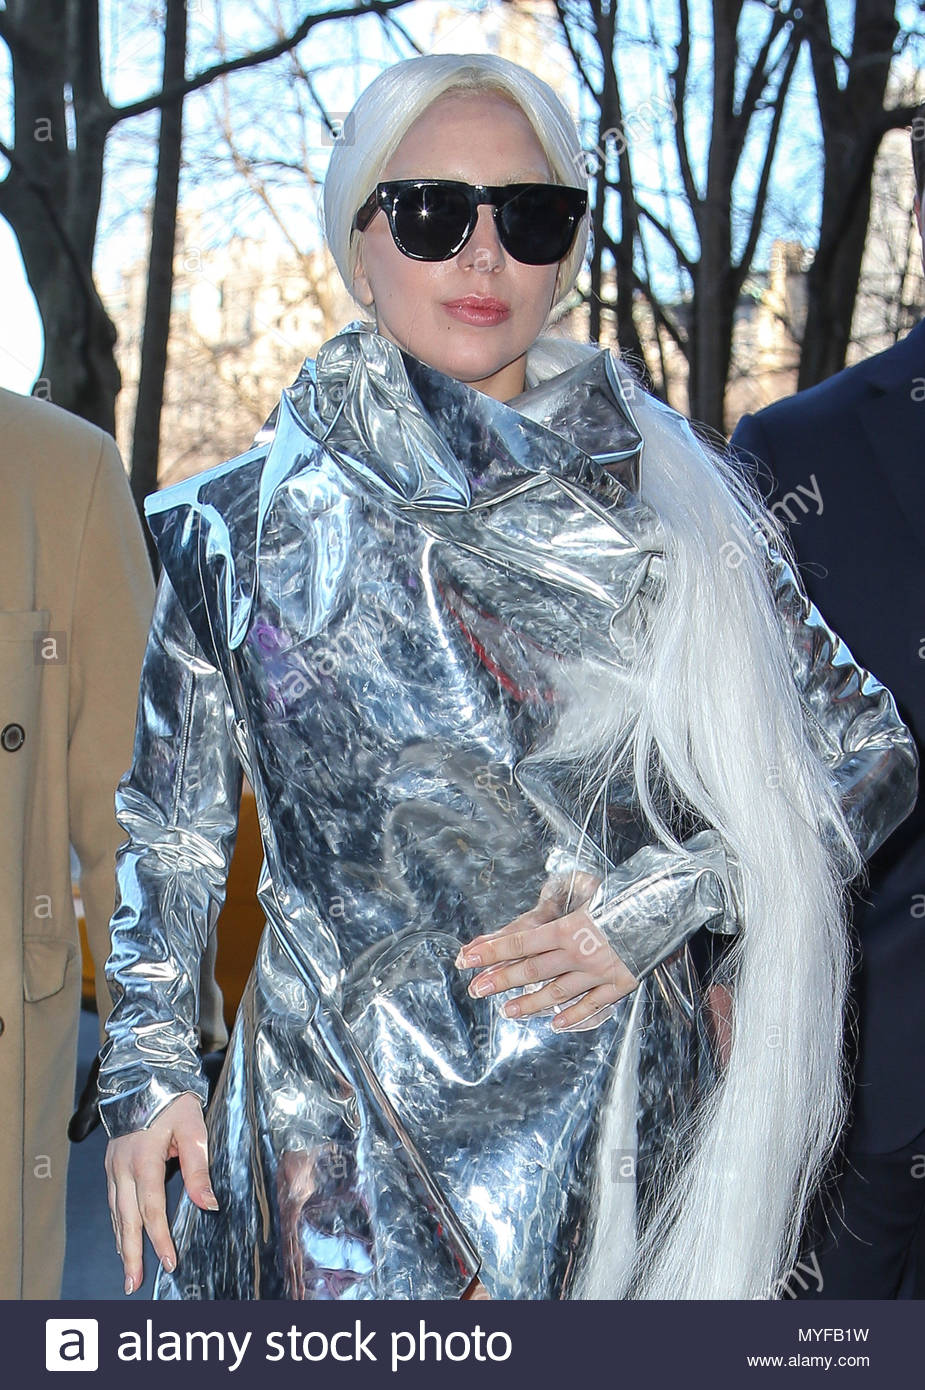 Lady Gaga Spotted In An Aluminum Outfit While Receiving A Gift From Fan For Her Upcoming 28th Birthday On This Month March 28 New York City